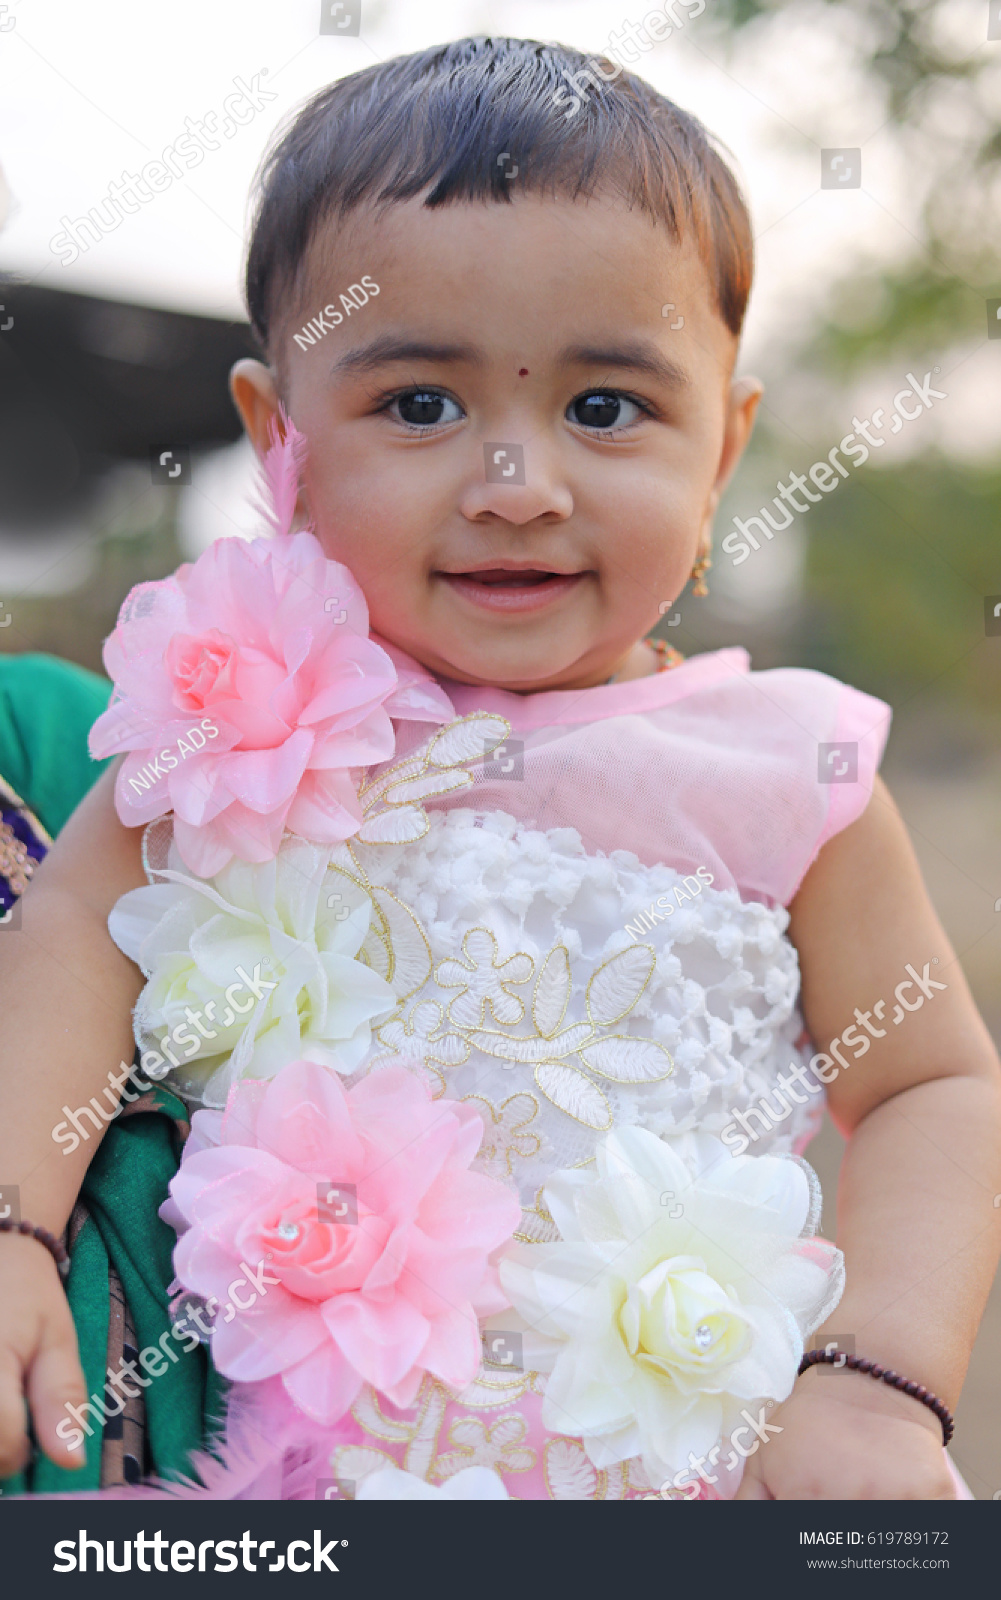 cute indian baby girl stock photo (edit now) 619789172 - shutterstock